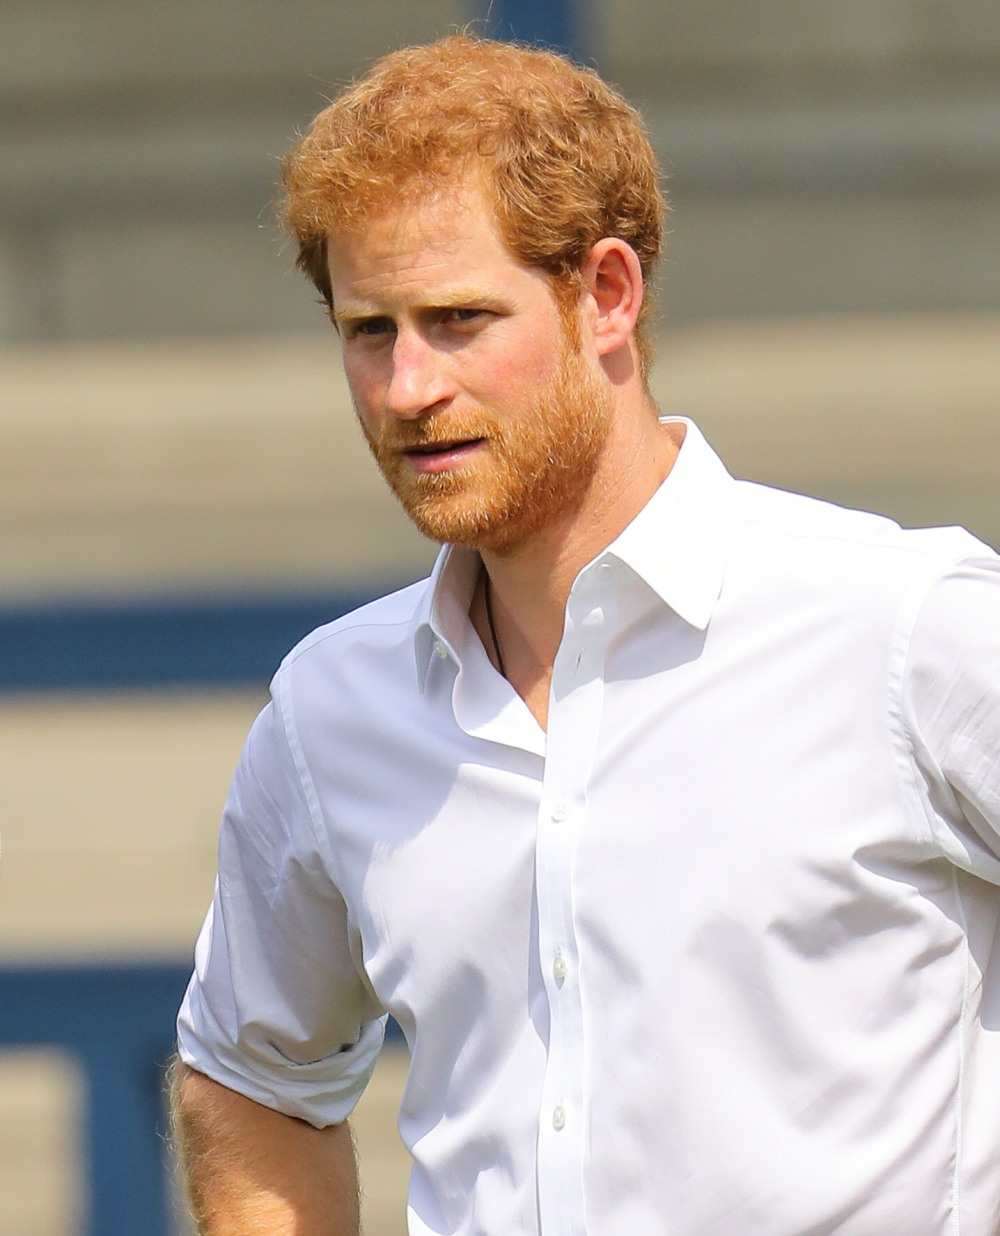 DM: Prince Harry Wants To Propose To Meghan